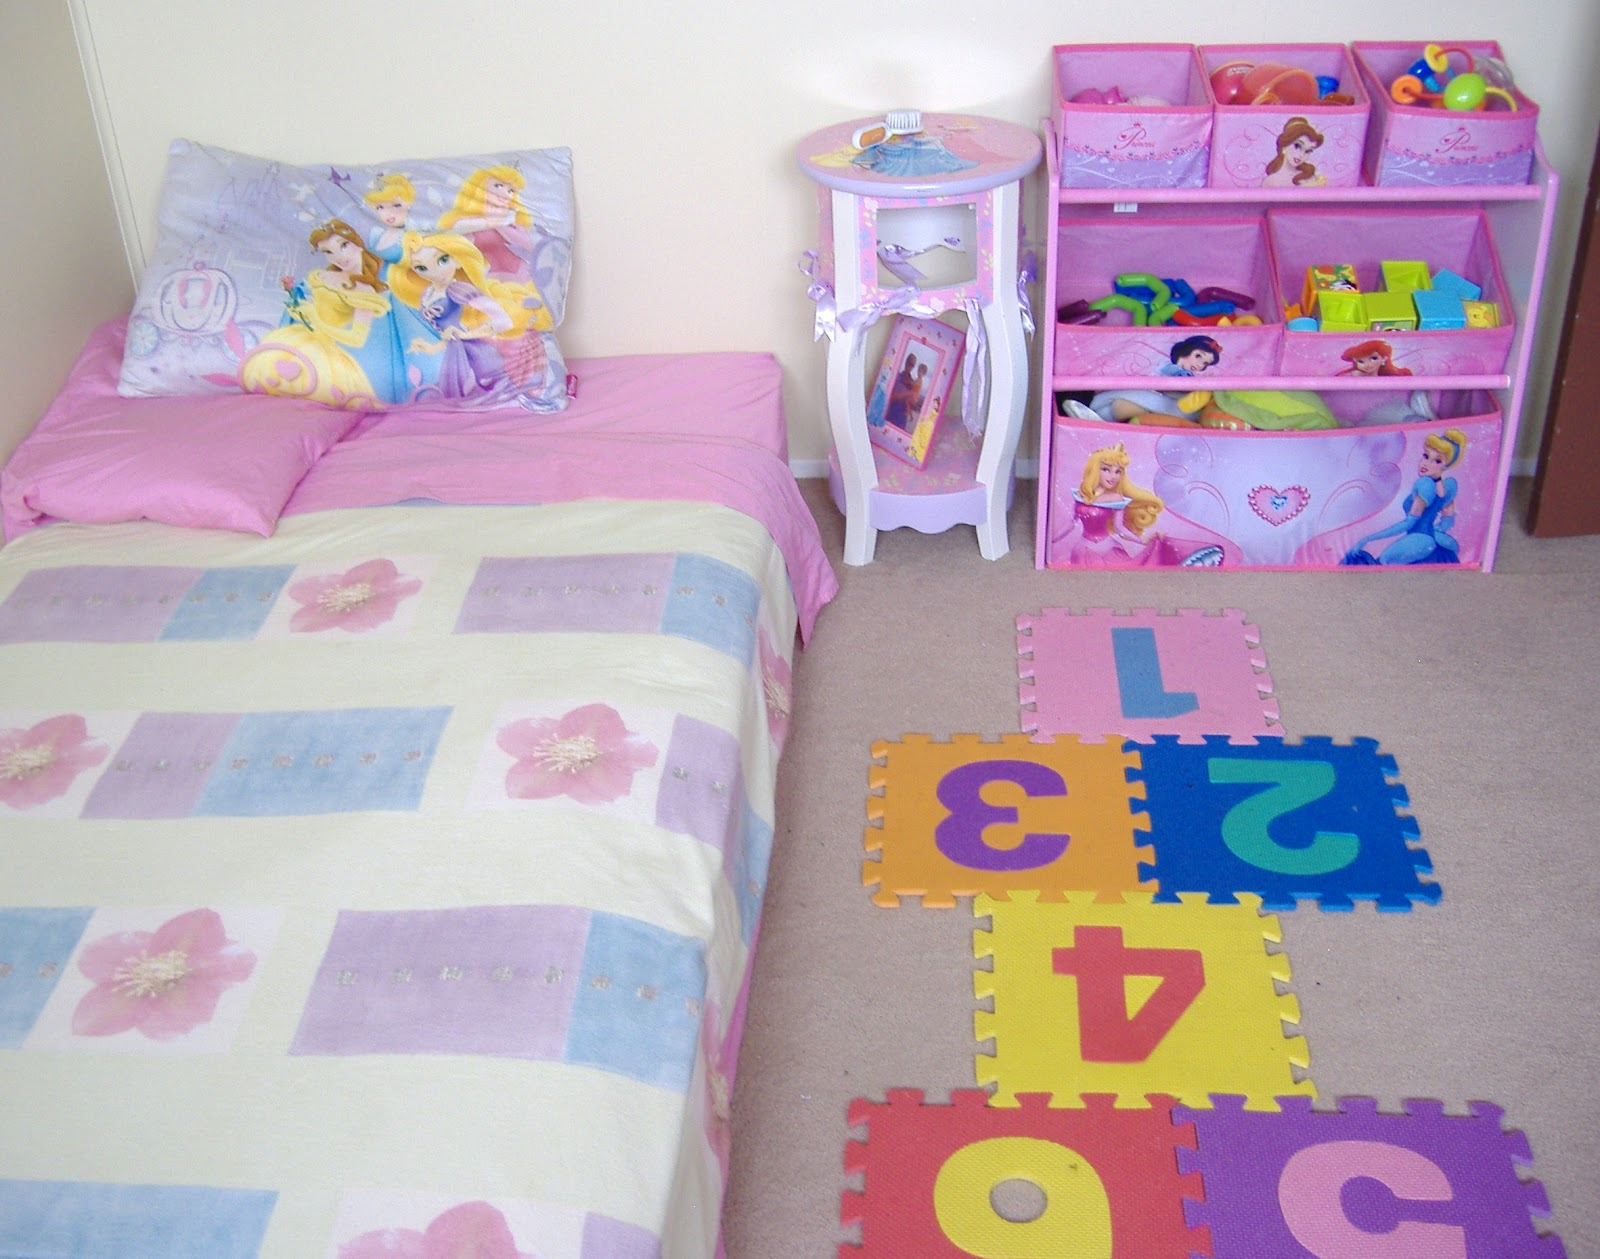 It 39 s her world ceecee 39 s montessori ish bedroom - Camitas para ninos ...